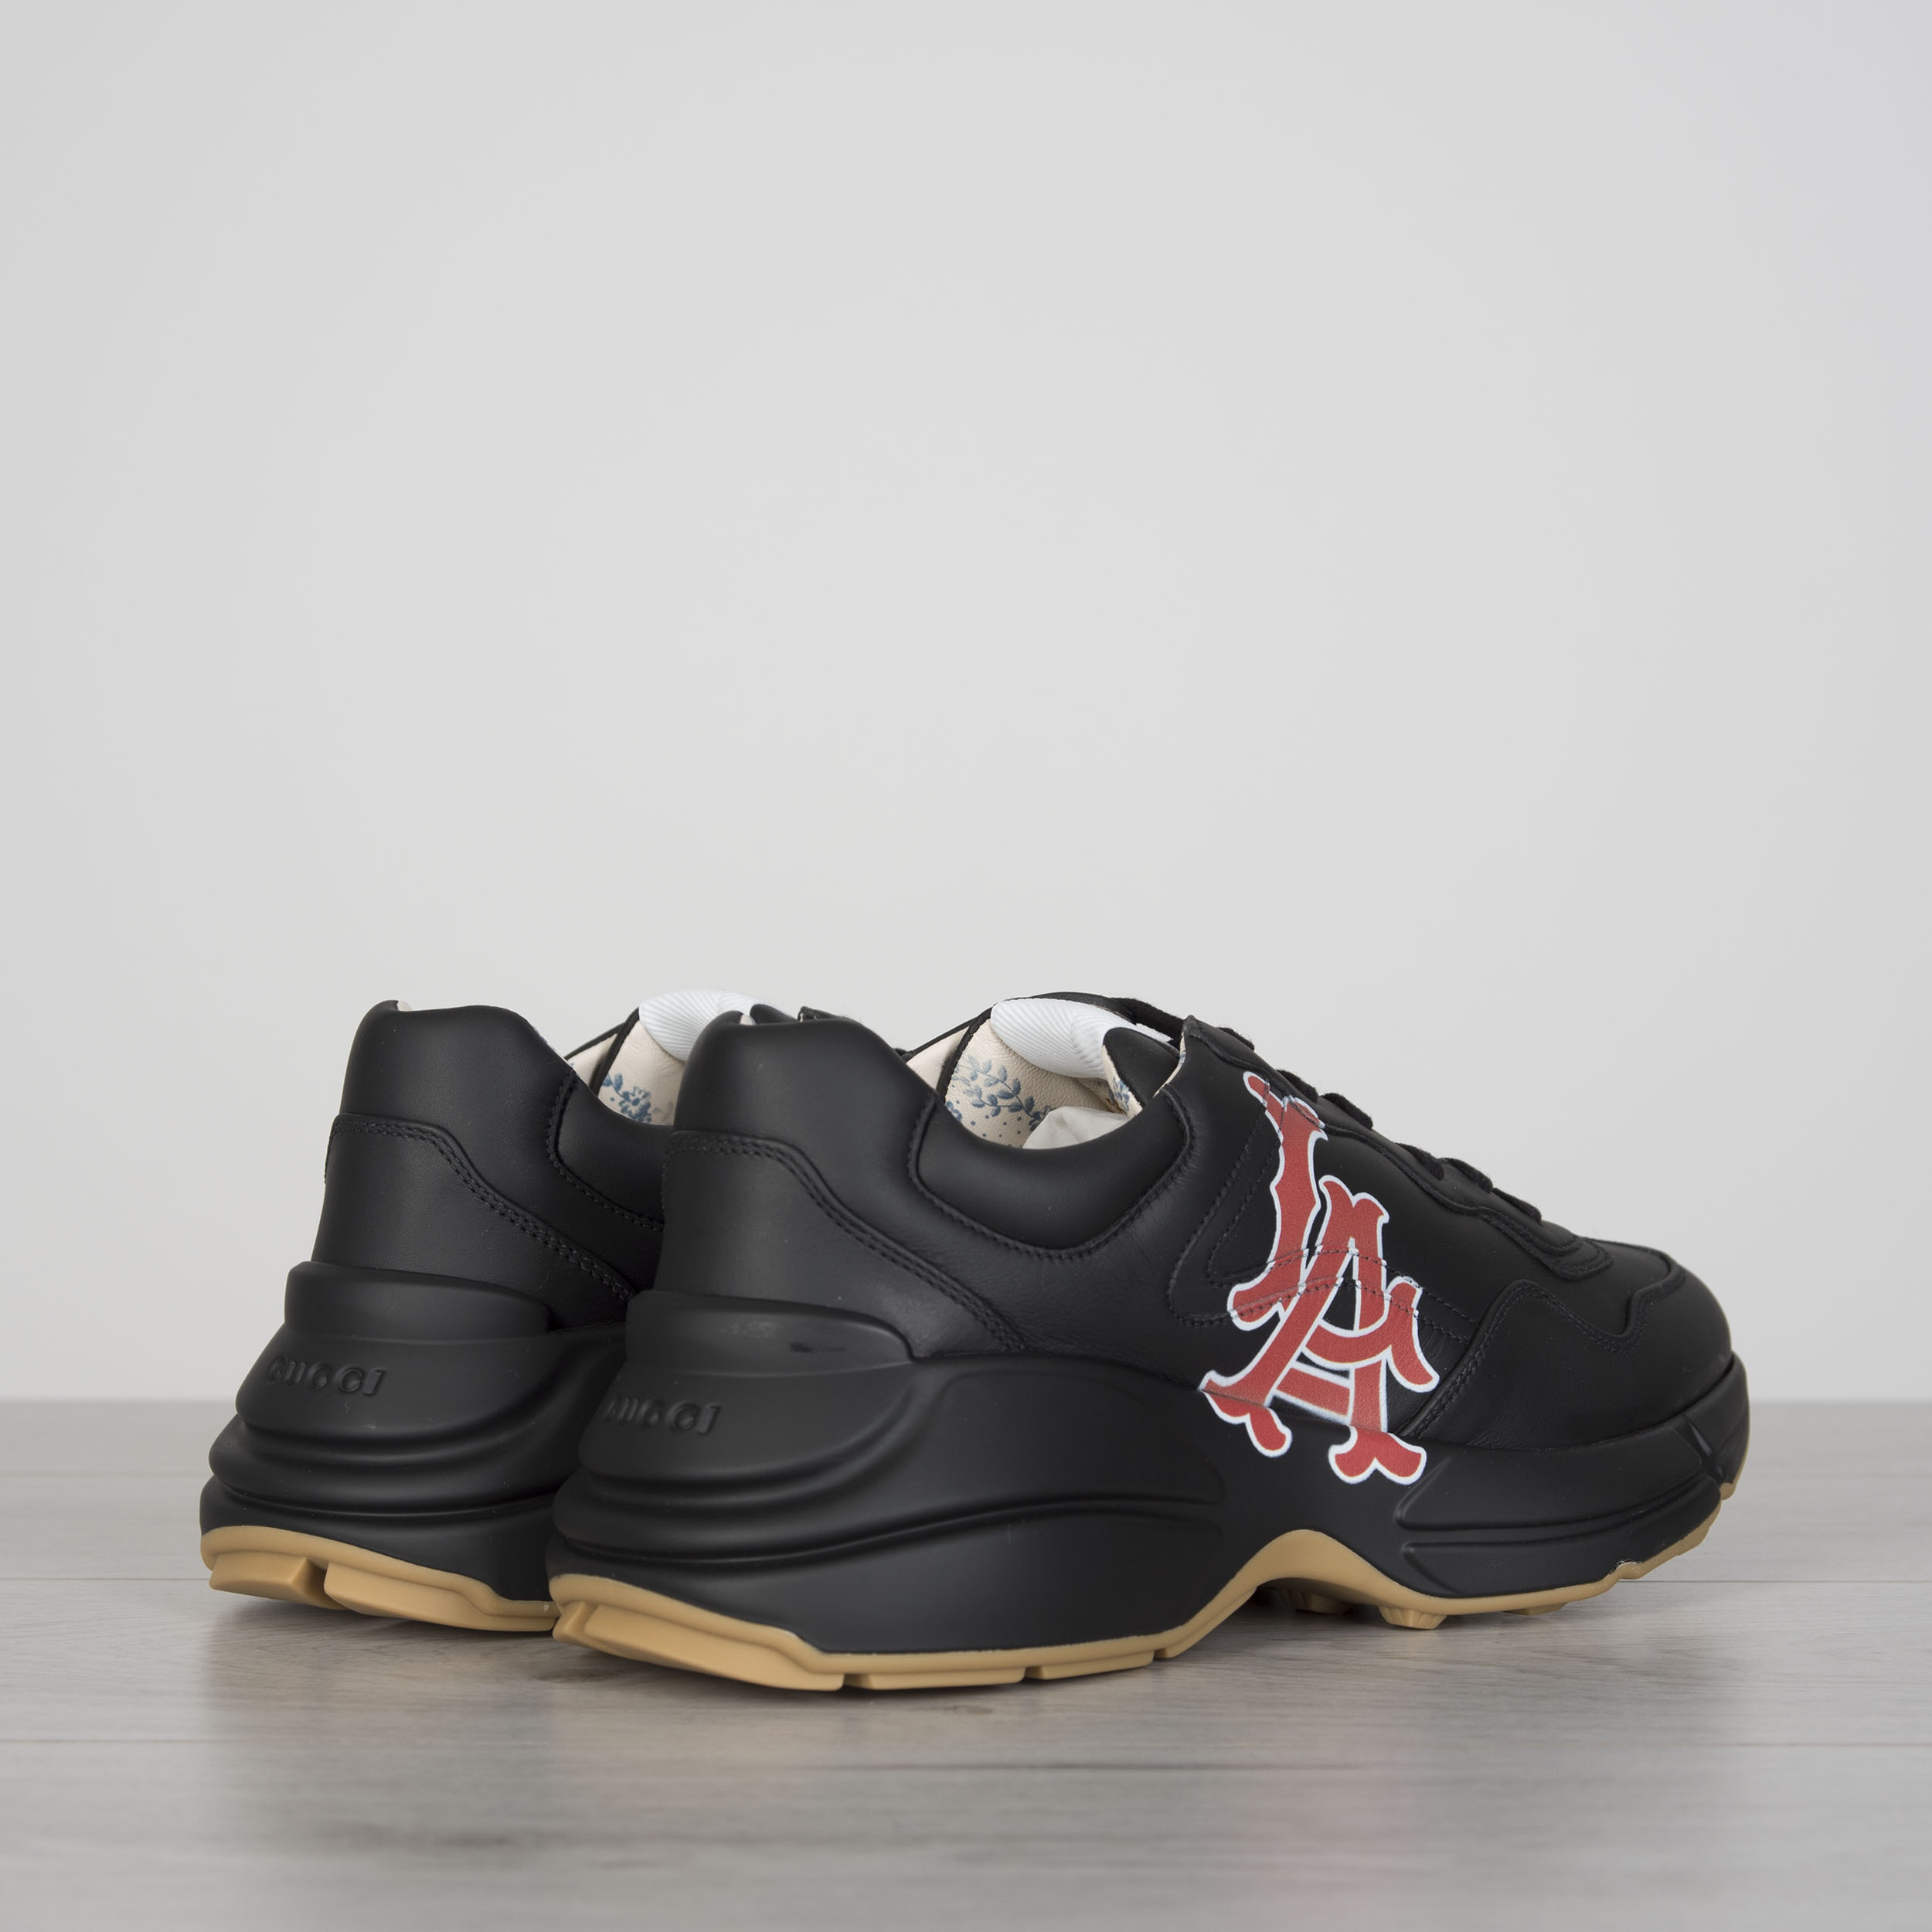 4dda521d9 Details about GUCCI 890$ Men's Rhyton Sneakers With LA Angels Print In Black  Leather